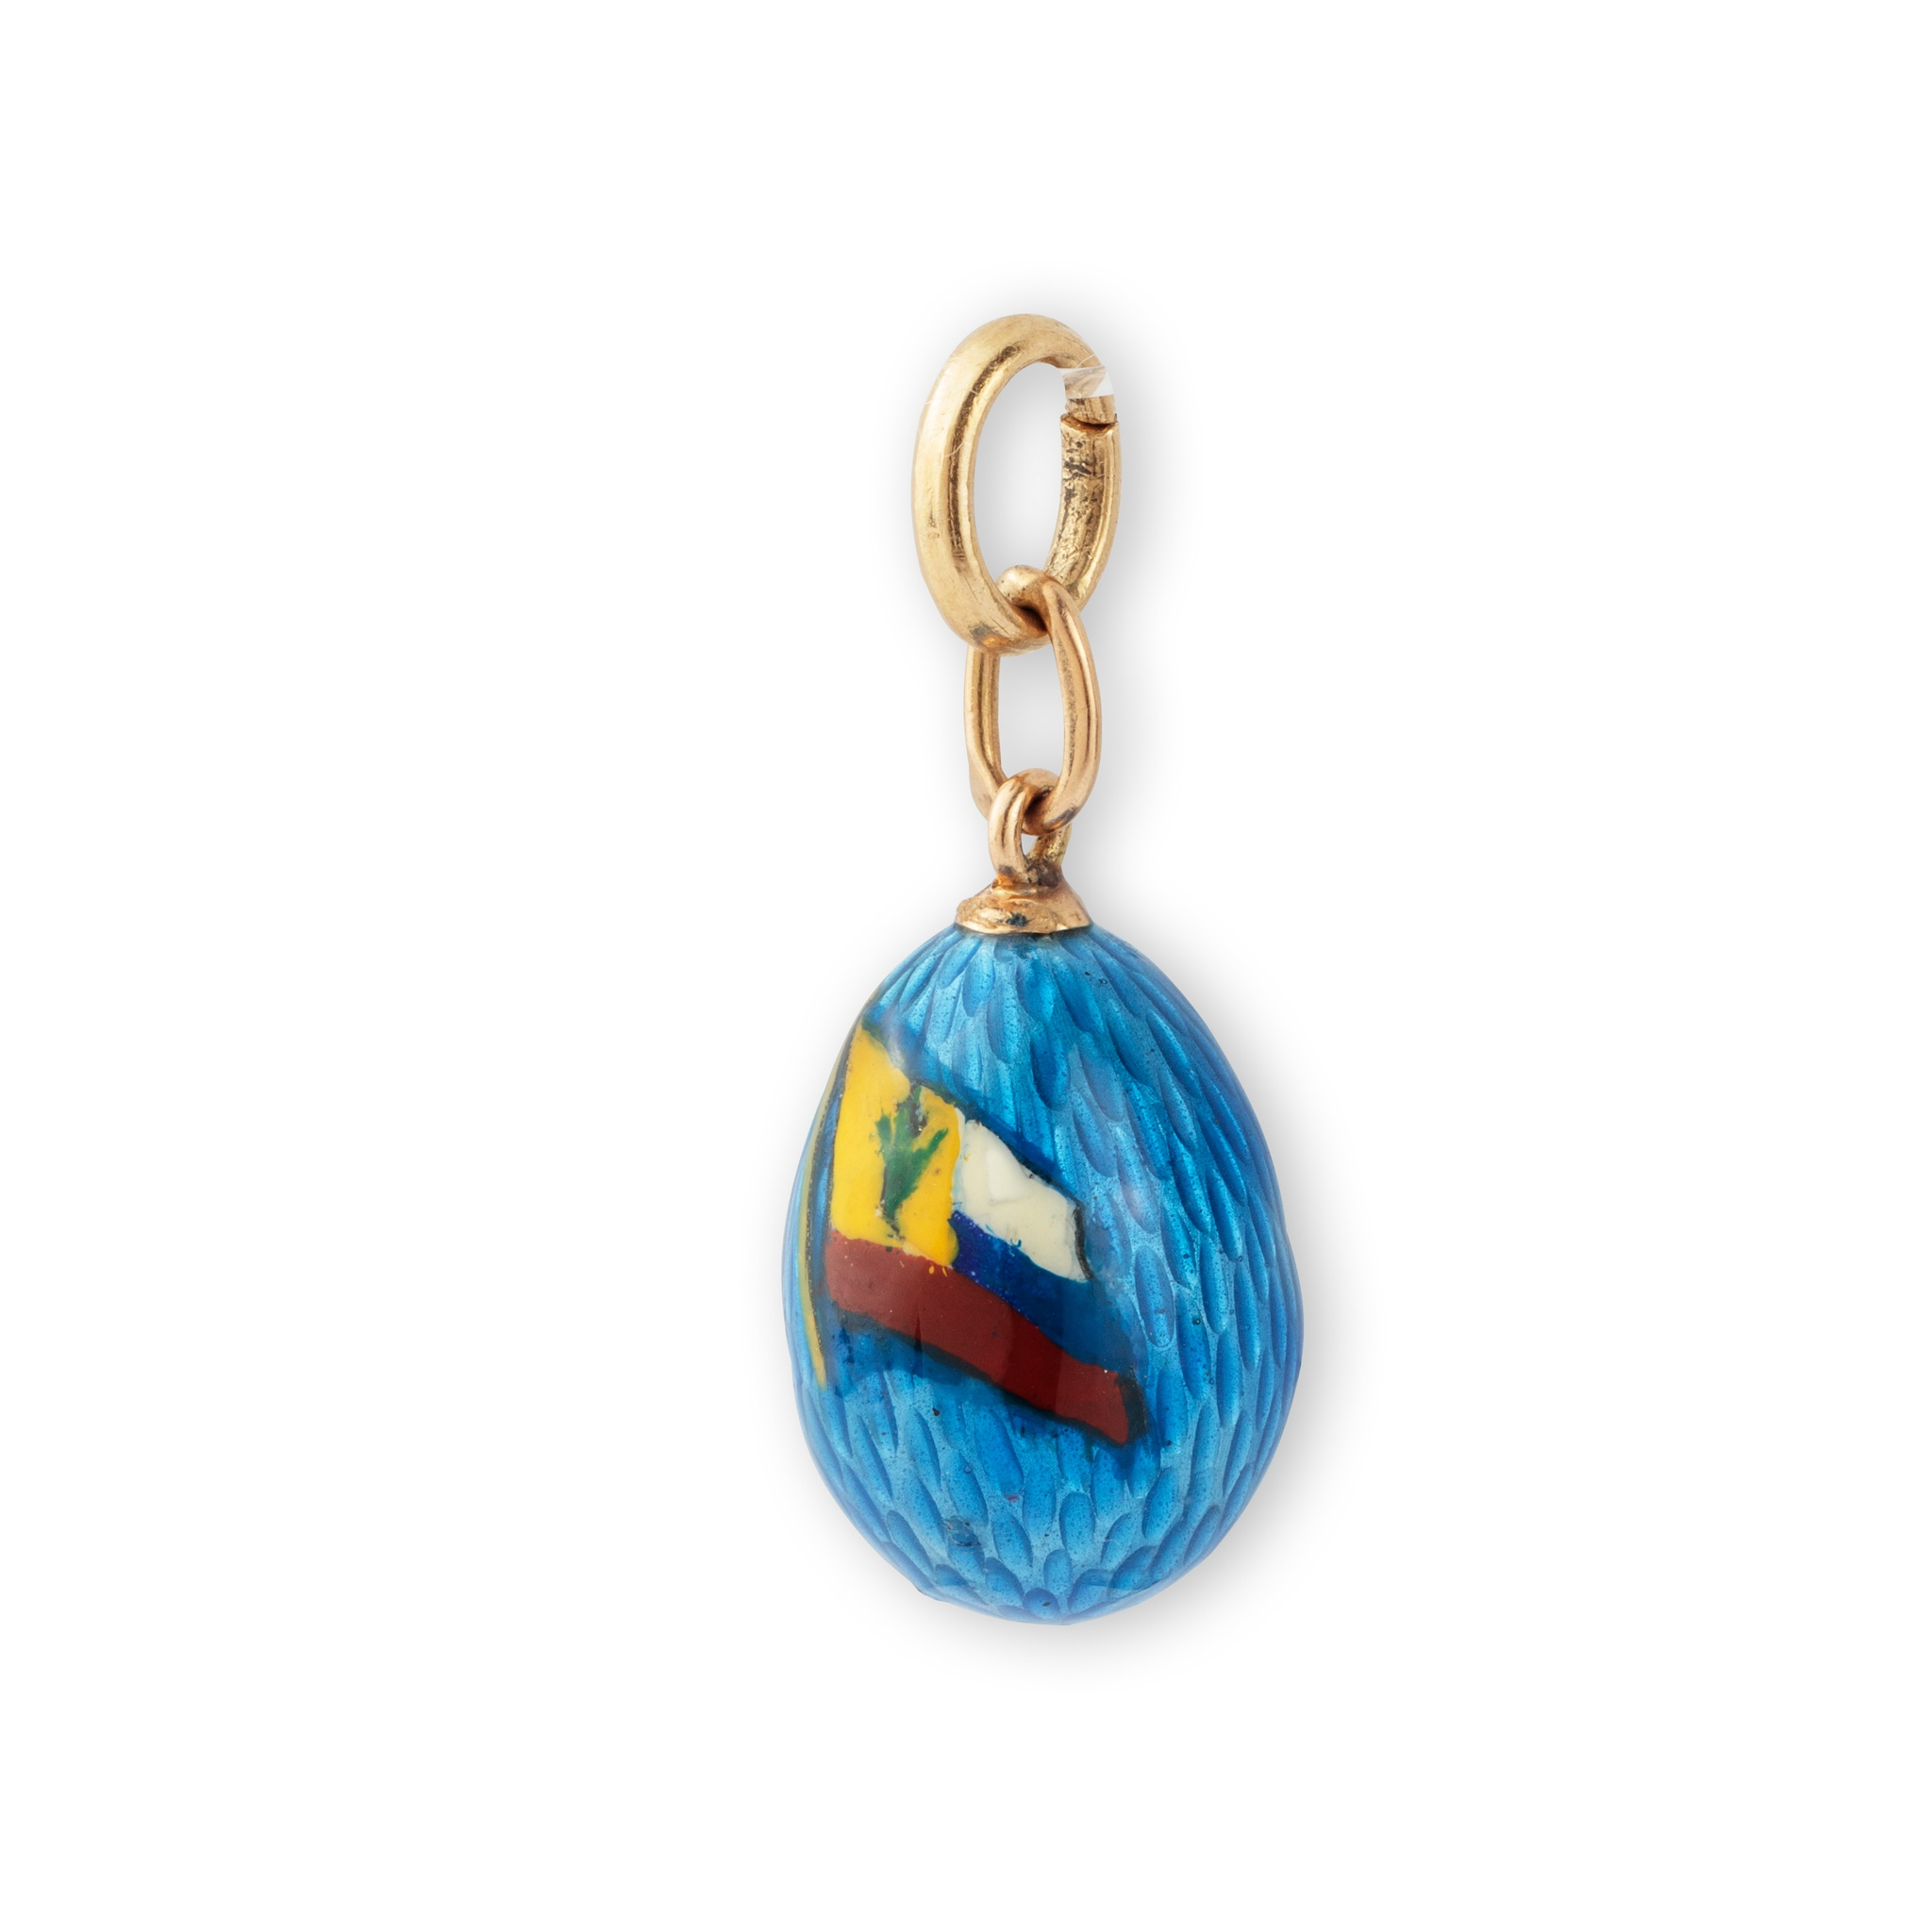 An early 20th century Russian enamelled egg pendant, circa 1914-17 Enamelled in light blue guilloché